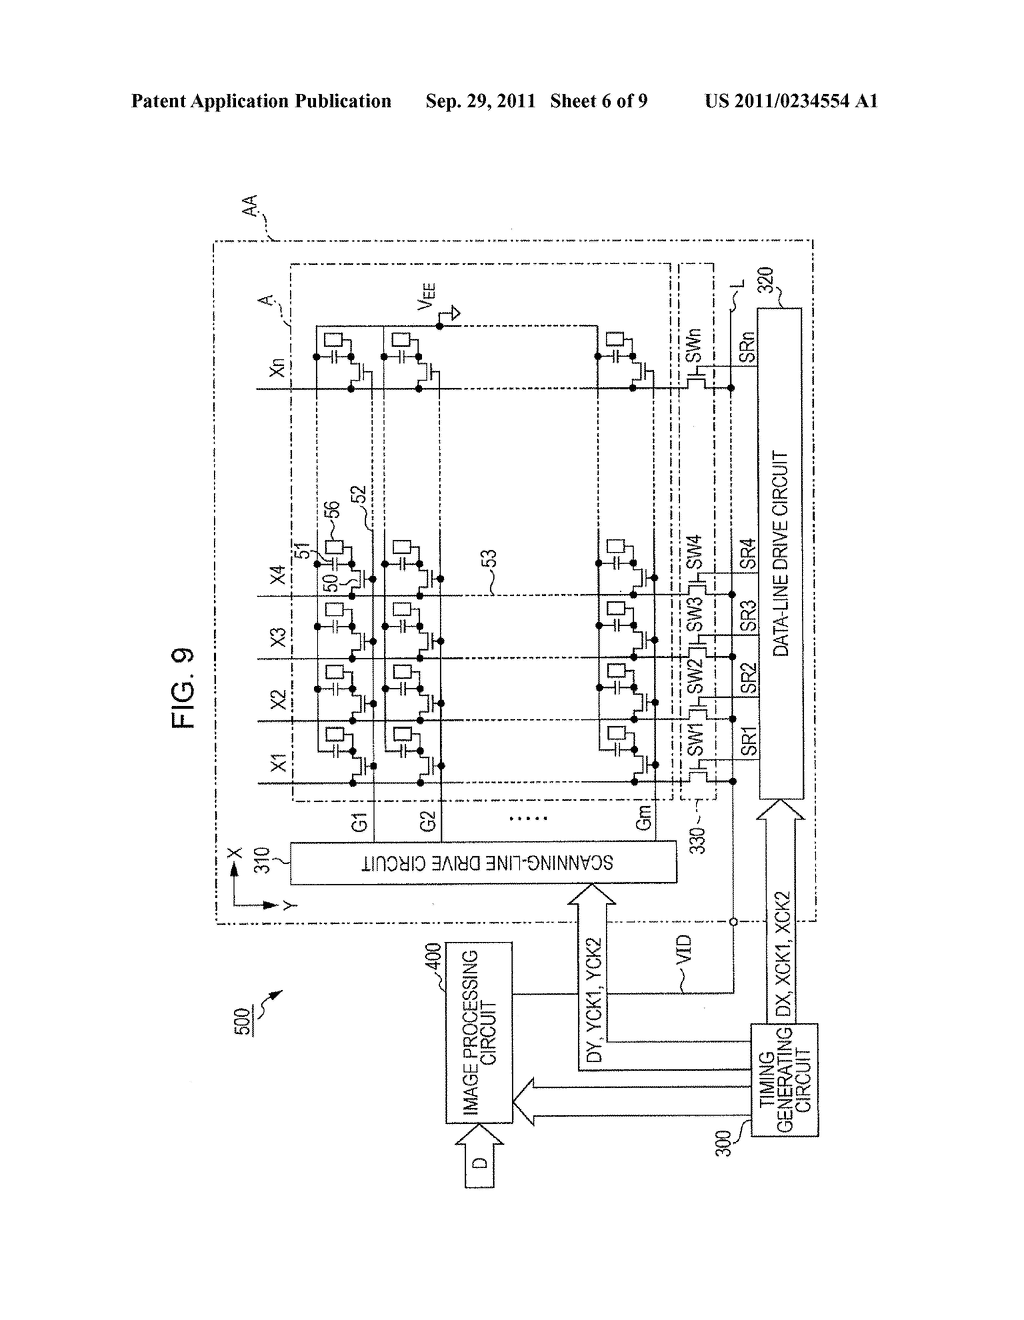 Shift Register Scanning Line Drive Circuit Data Diagram Electro Optical Device And Electronic Apparatus Schematic Image 07